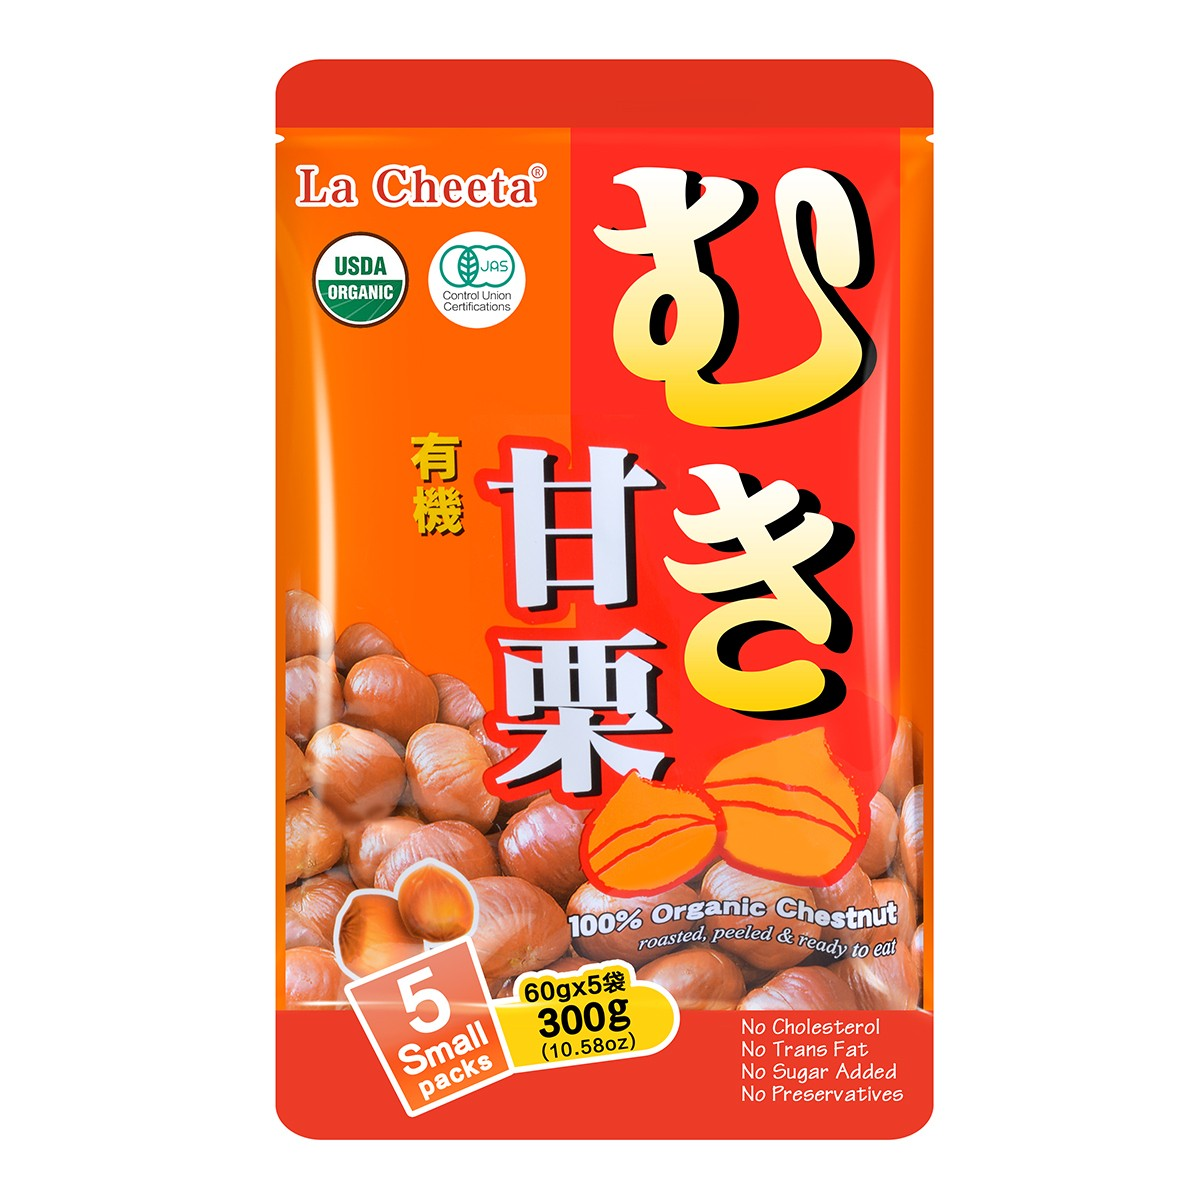 LA CHEETA 100% Natural Organic Chestnut 5PACKs